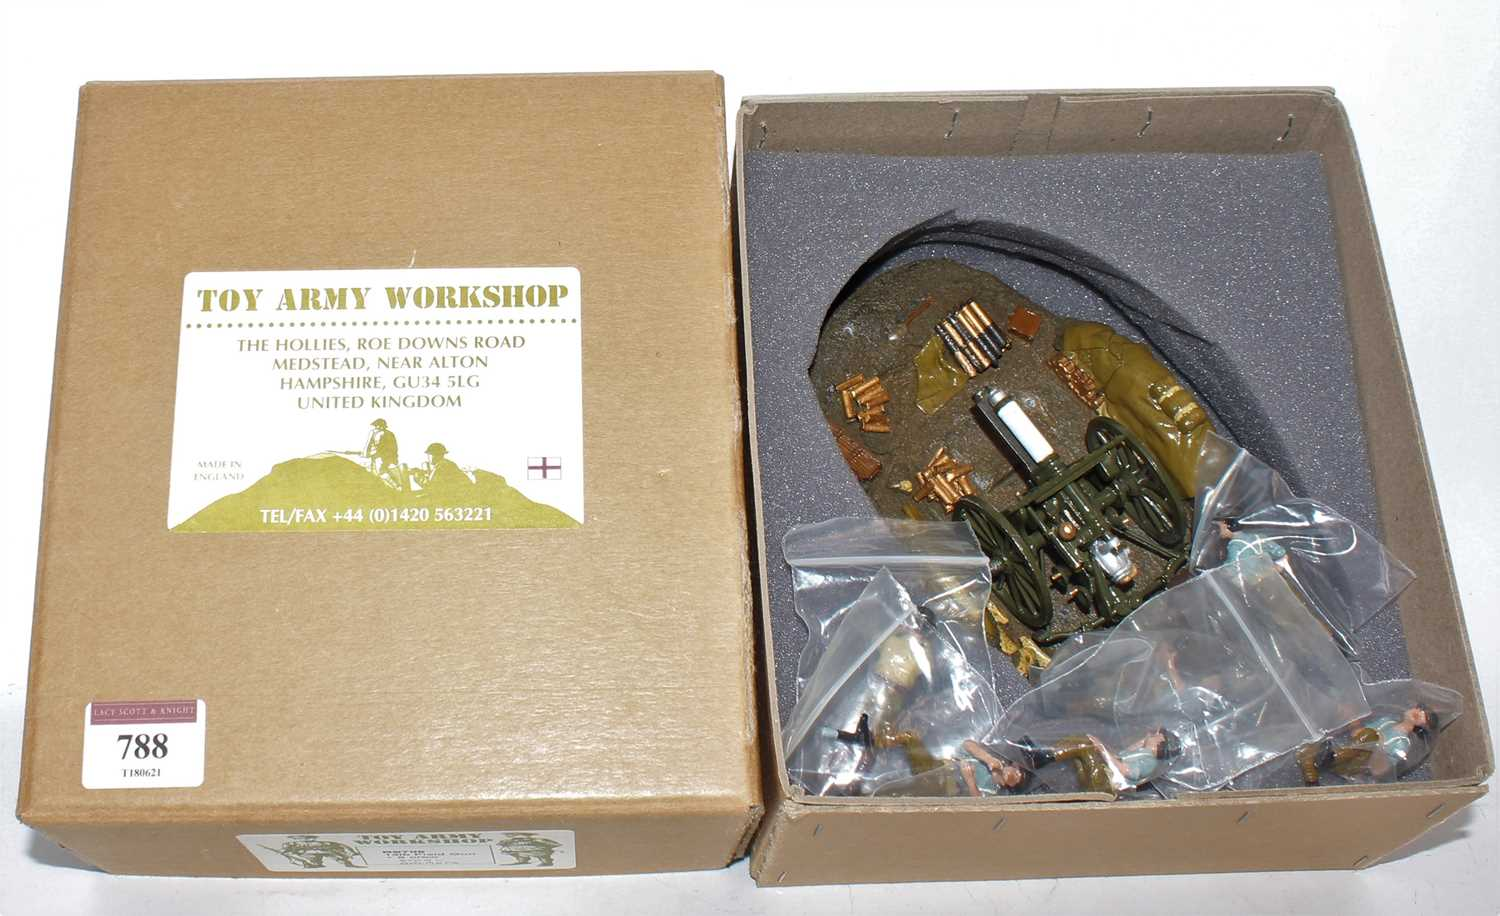 The Toy Army Workshop Made in England white metal model No. BS706 13lb field gun and six crew gift